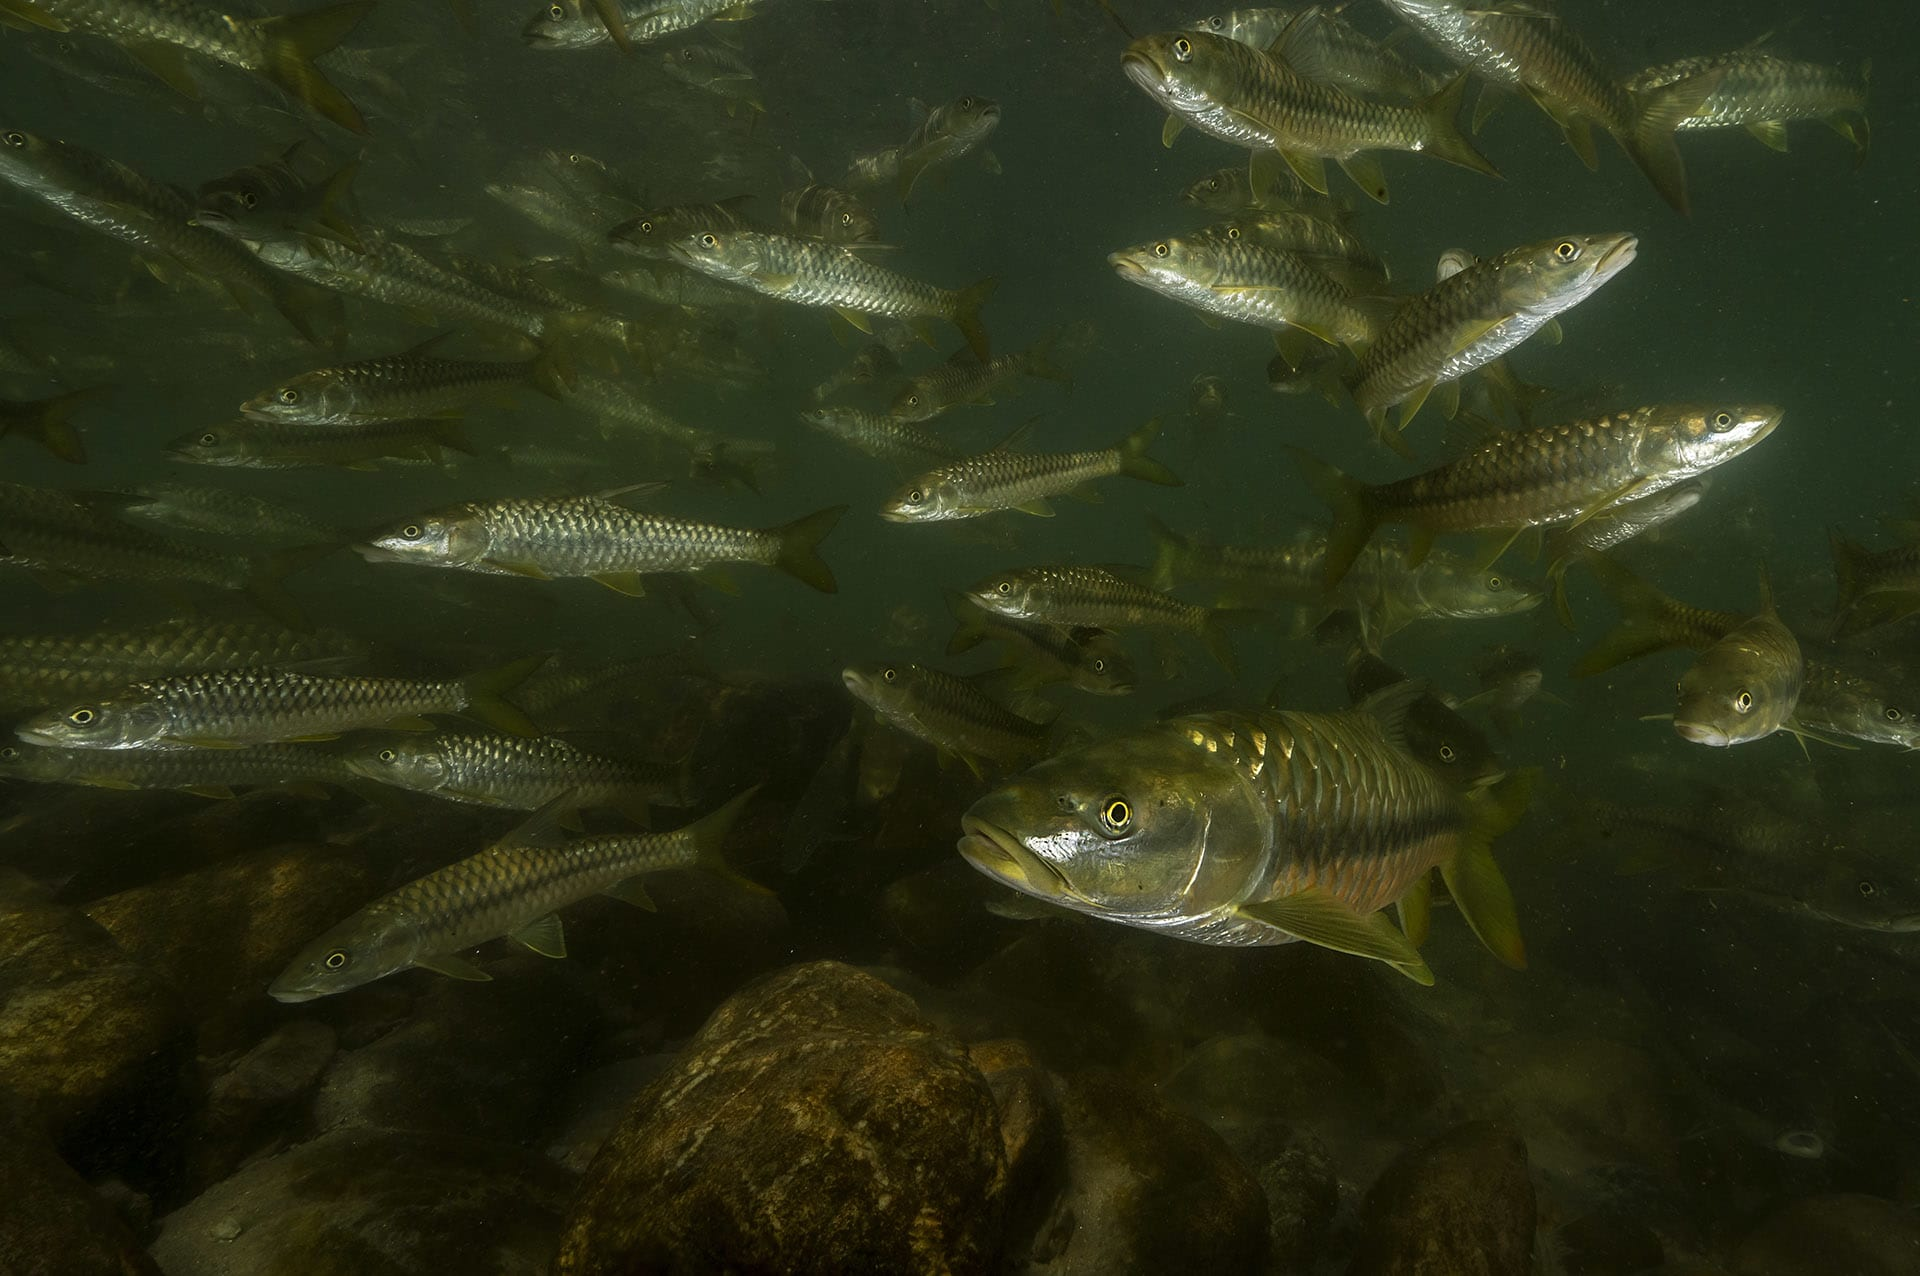 """However, there are bigger threats to the mahseer than angling communities. In recent years, the species has been hunted in alarming ways: using dynamite, poison, even electrocution. These practices still exist in Uttarakhand and other states. Habitat loss is another cause for concern. Hydrological projects hamper the golden mahseer's ability to migrate, as the species requires connectivity in a river system. """"Ramganga Dam and several other dams in Himalayan states have posed a hindrance to the natural migratory pattern of this species,"""" explains Dr Atkore. """"This has fragmented their population both above and below the dams, and restricted genetic exchange."""""""